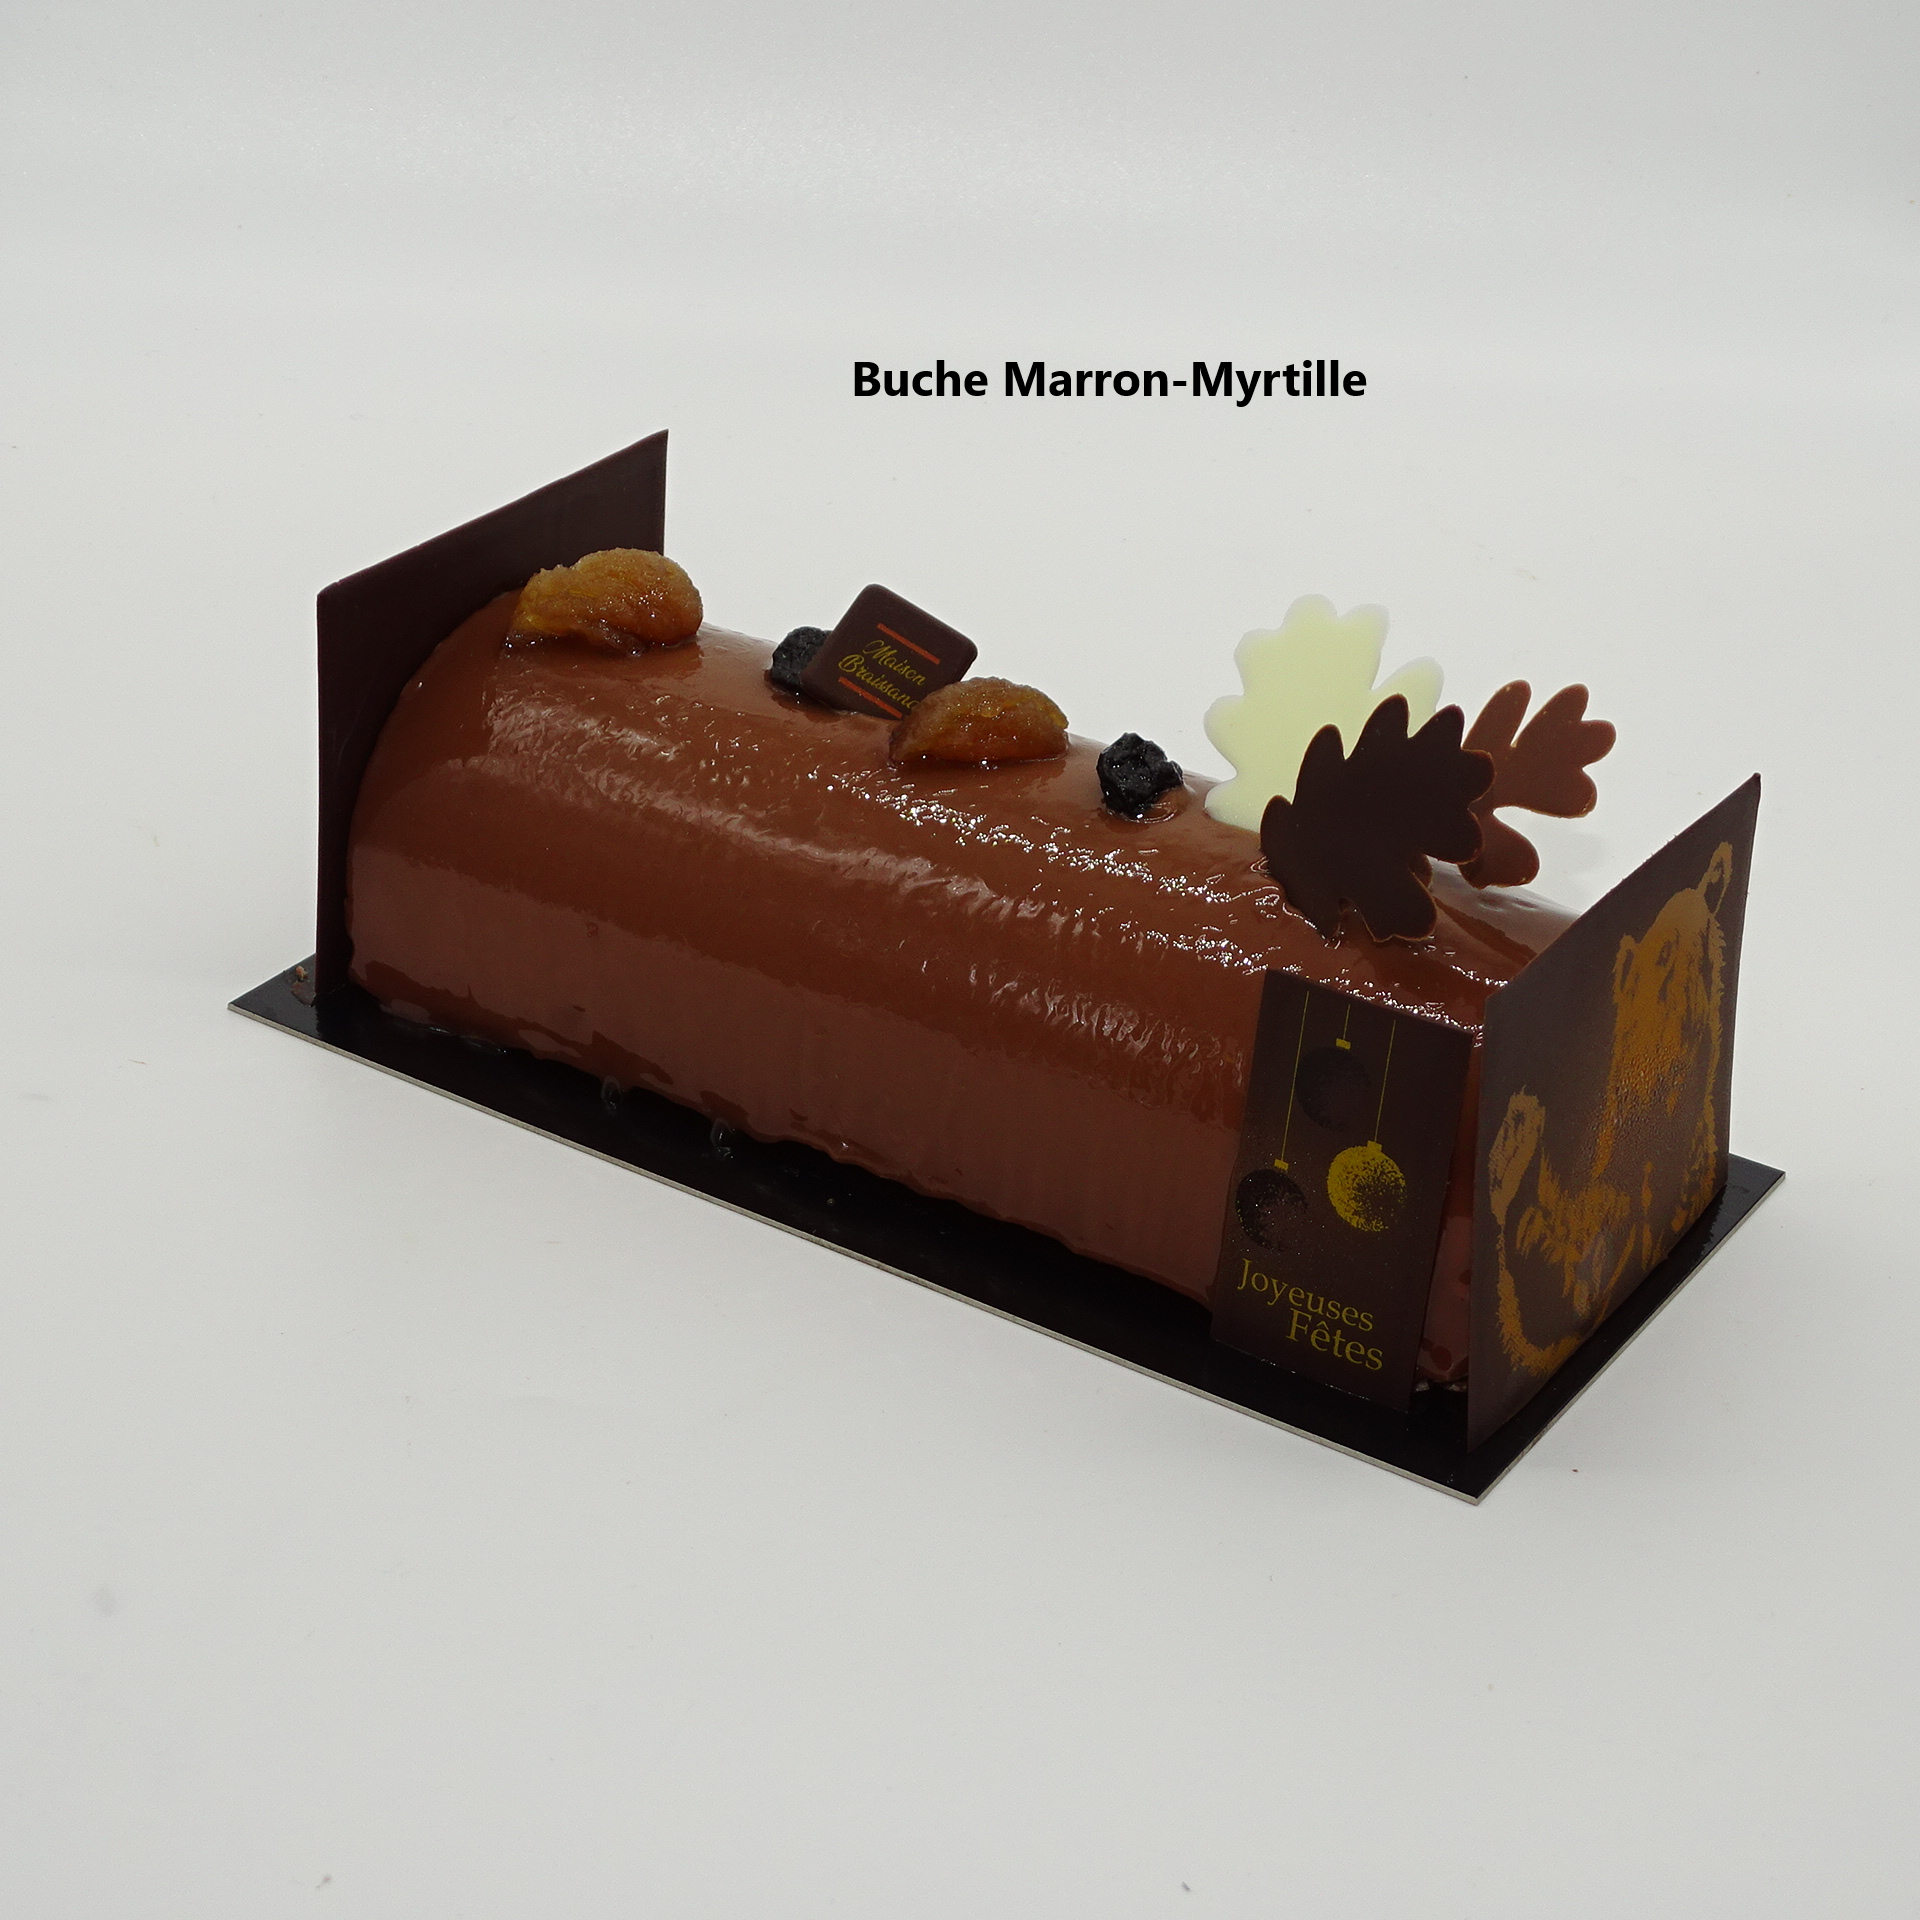 Buche Marron-Myrtille